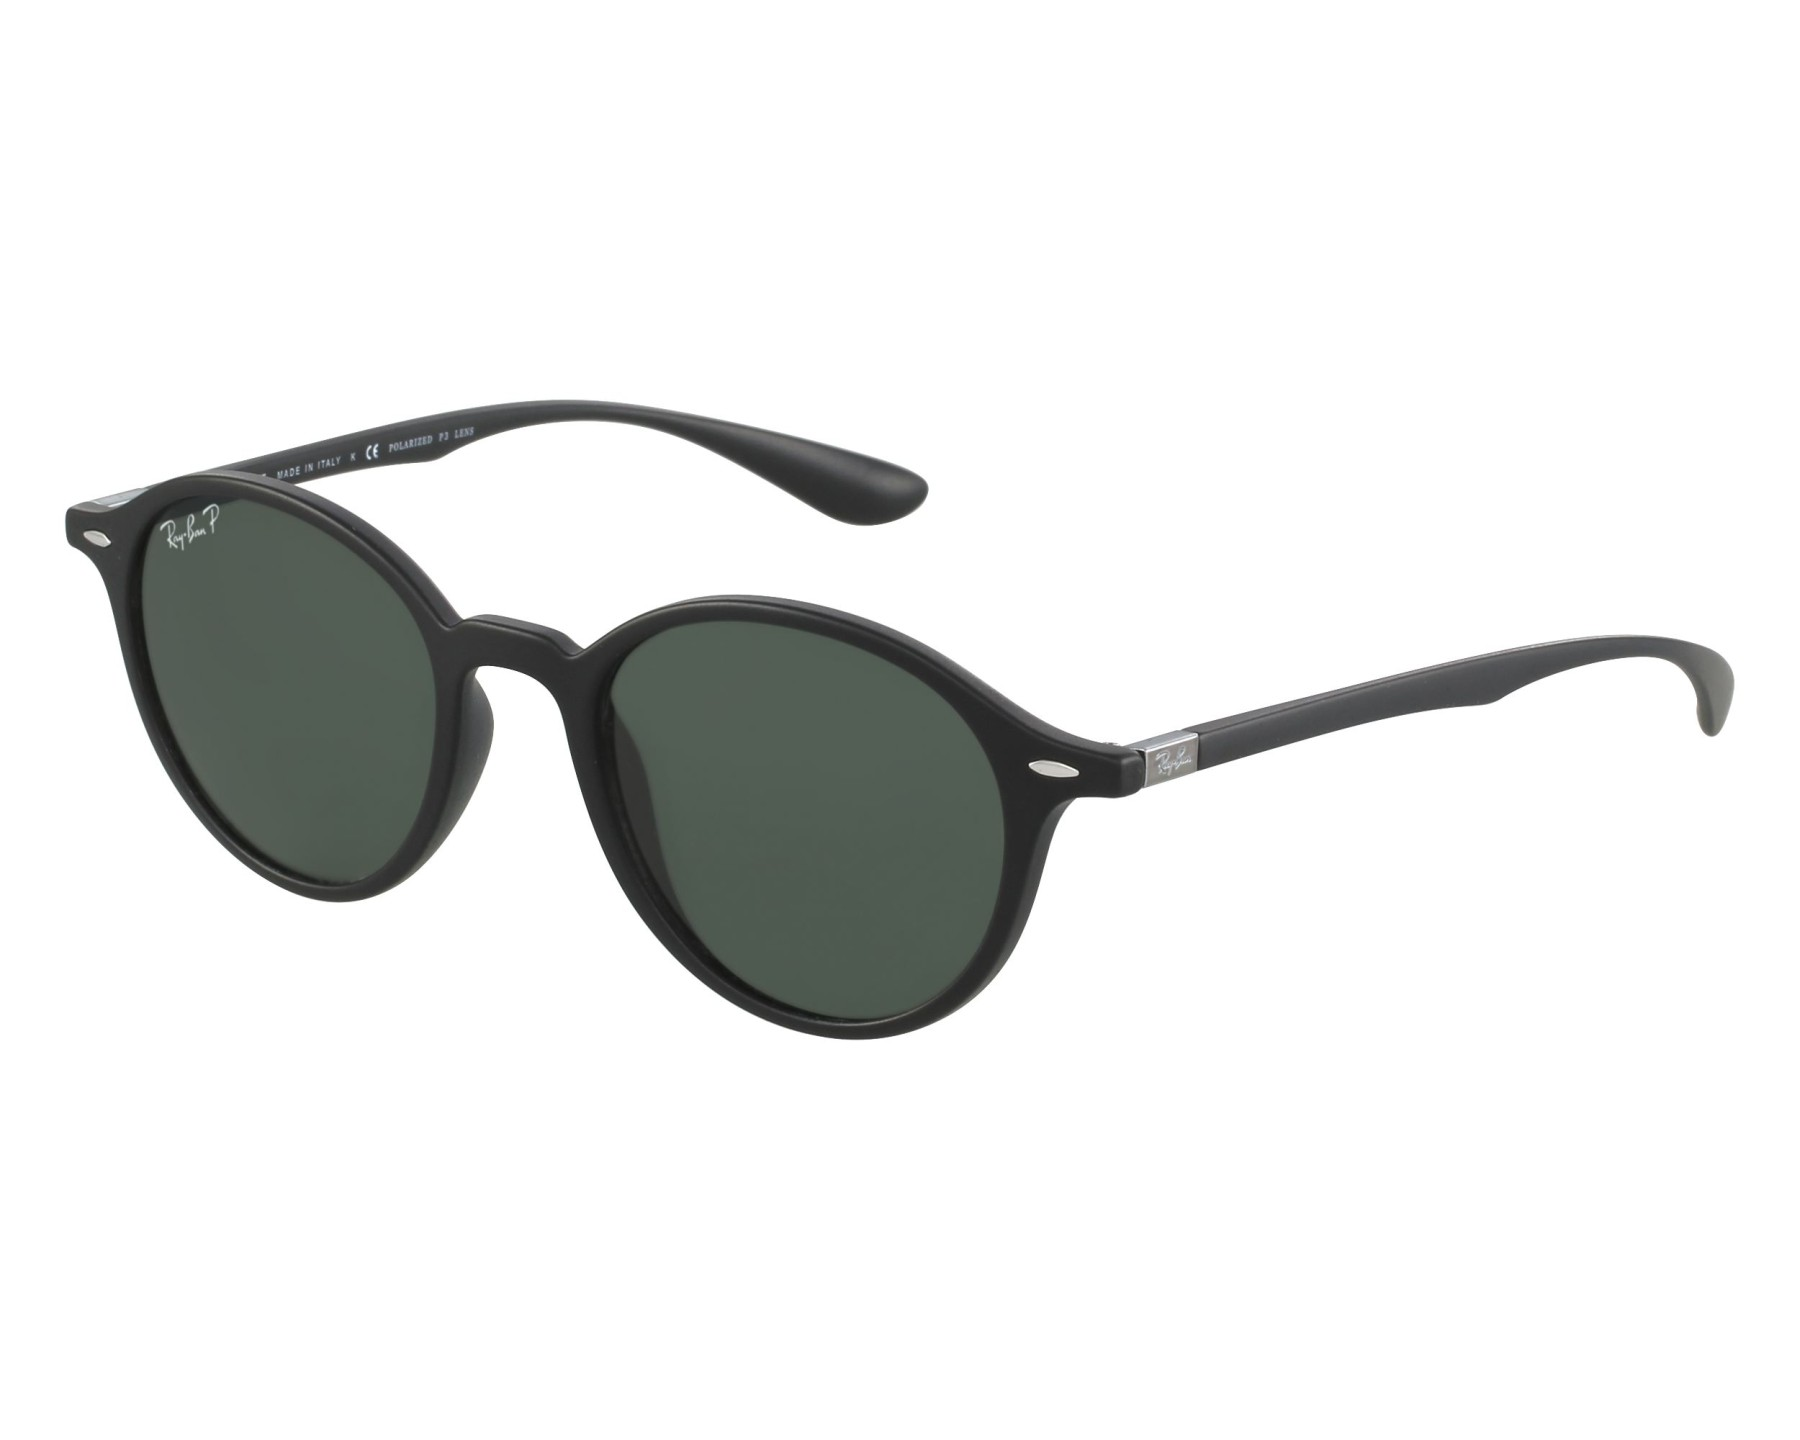 b8ccffc9835 Sunglasses Ray-Ban RB-4237 601S58 50-21 Black front view